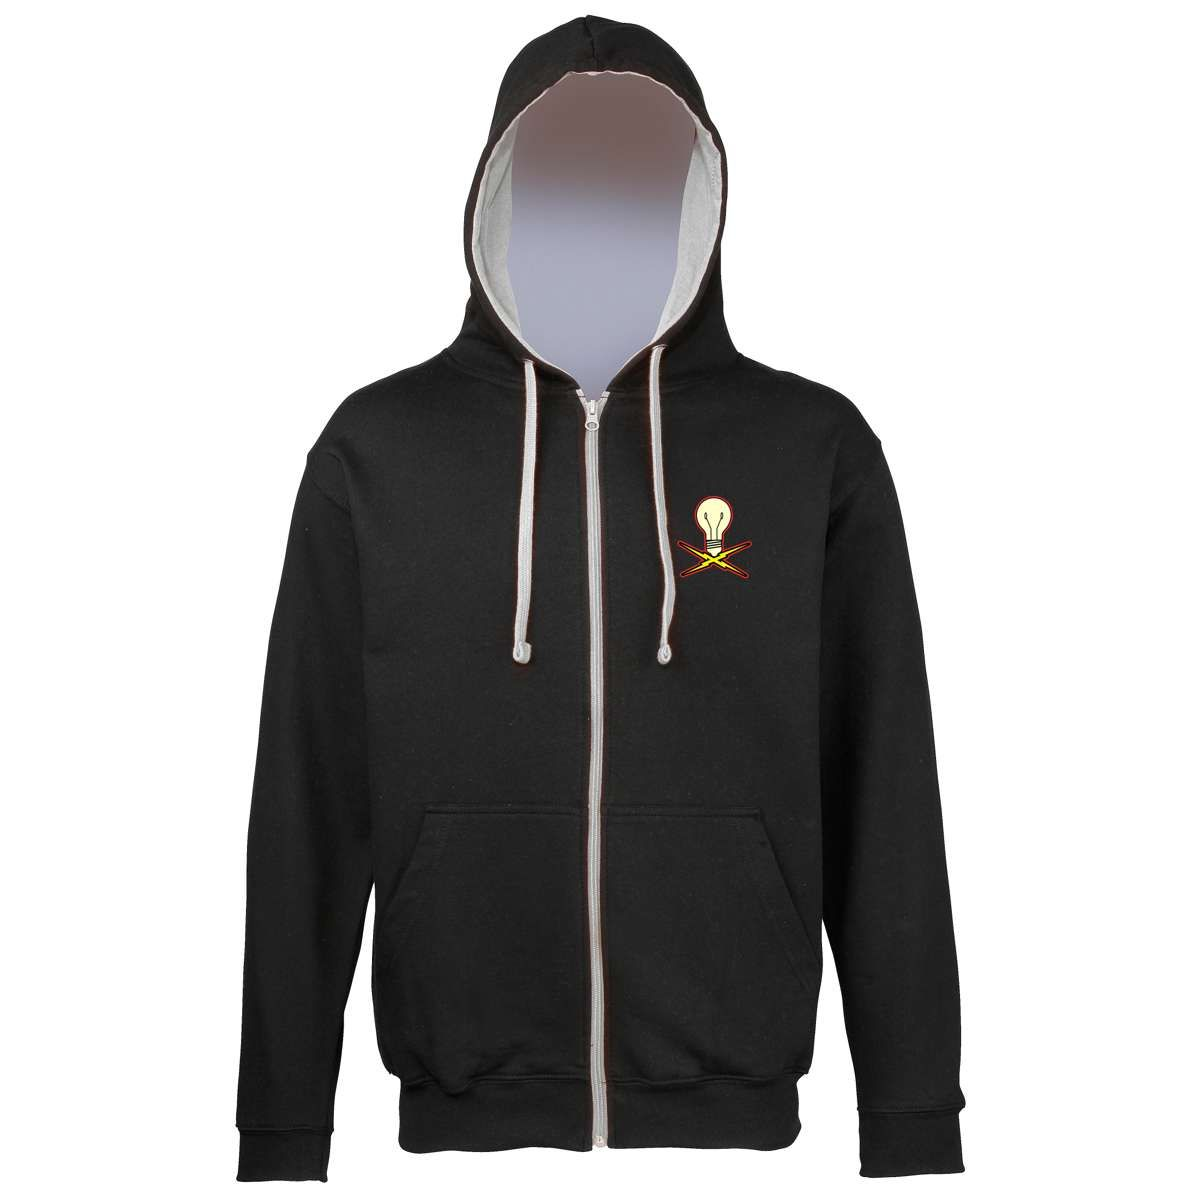 New Lightbulb Zip Hoodie - Eureka Machines